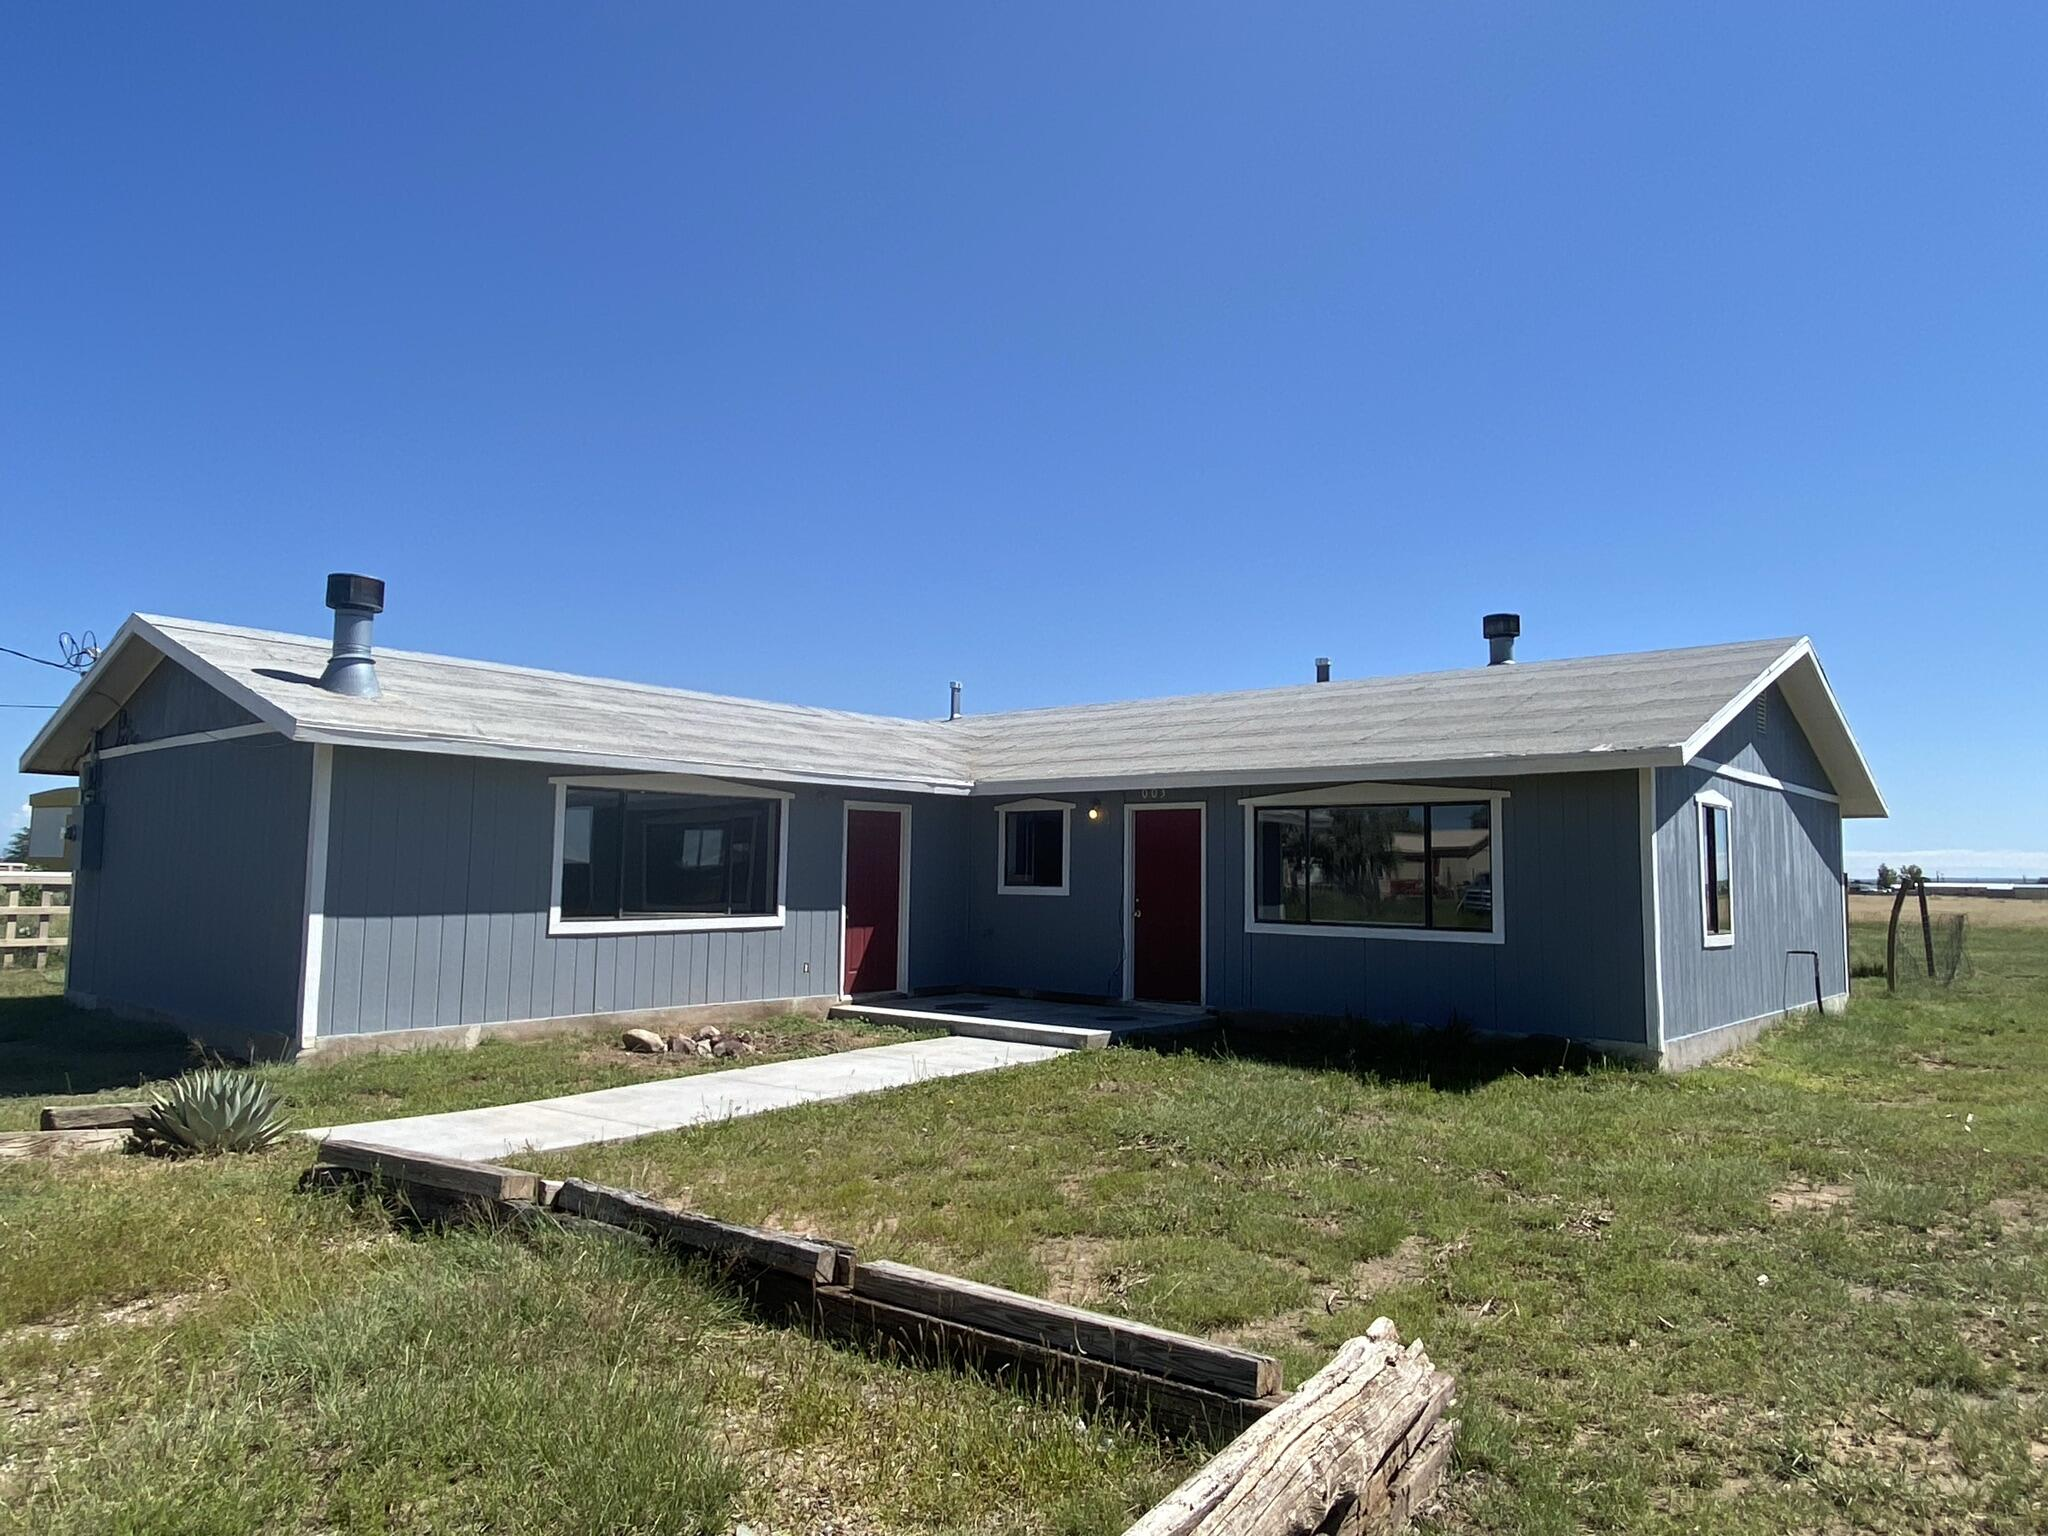 Moriarty, NM site-built home on a half-acre lot is now available.  This home is 1613 square feet, with 2-living areas, 3 bedrooms and 2 baths. Both living areas have wood burning fireplaces. Seller has installed new flooring throughout and fresh paint inside and outside.  A new shingle roof will be installed soon. This home is ready for you to occupy. Albuquerque in less than an hour and Santa Fe right at an hour.